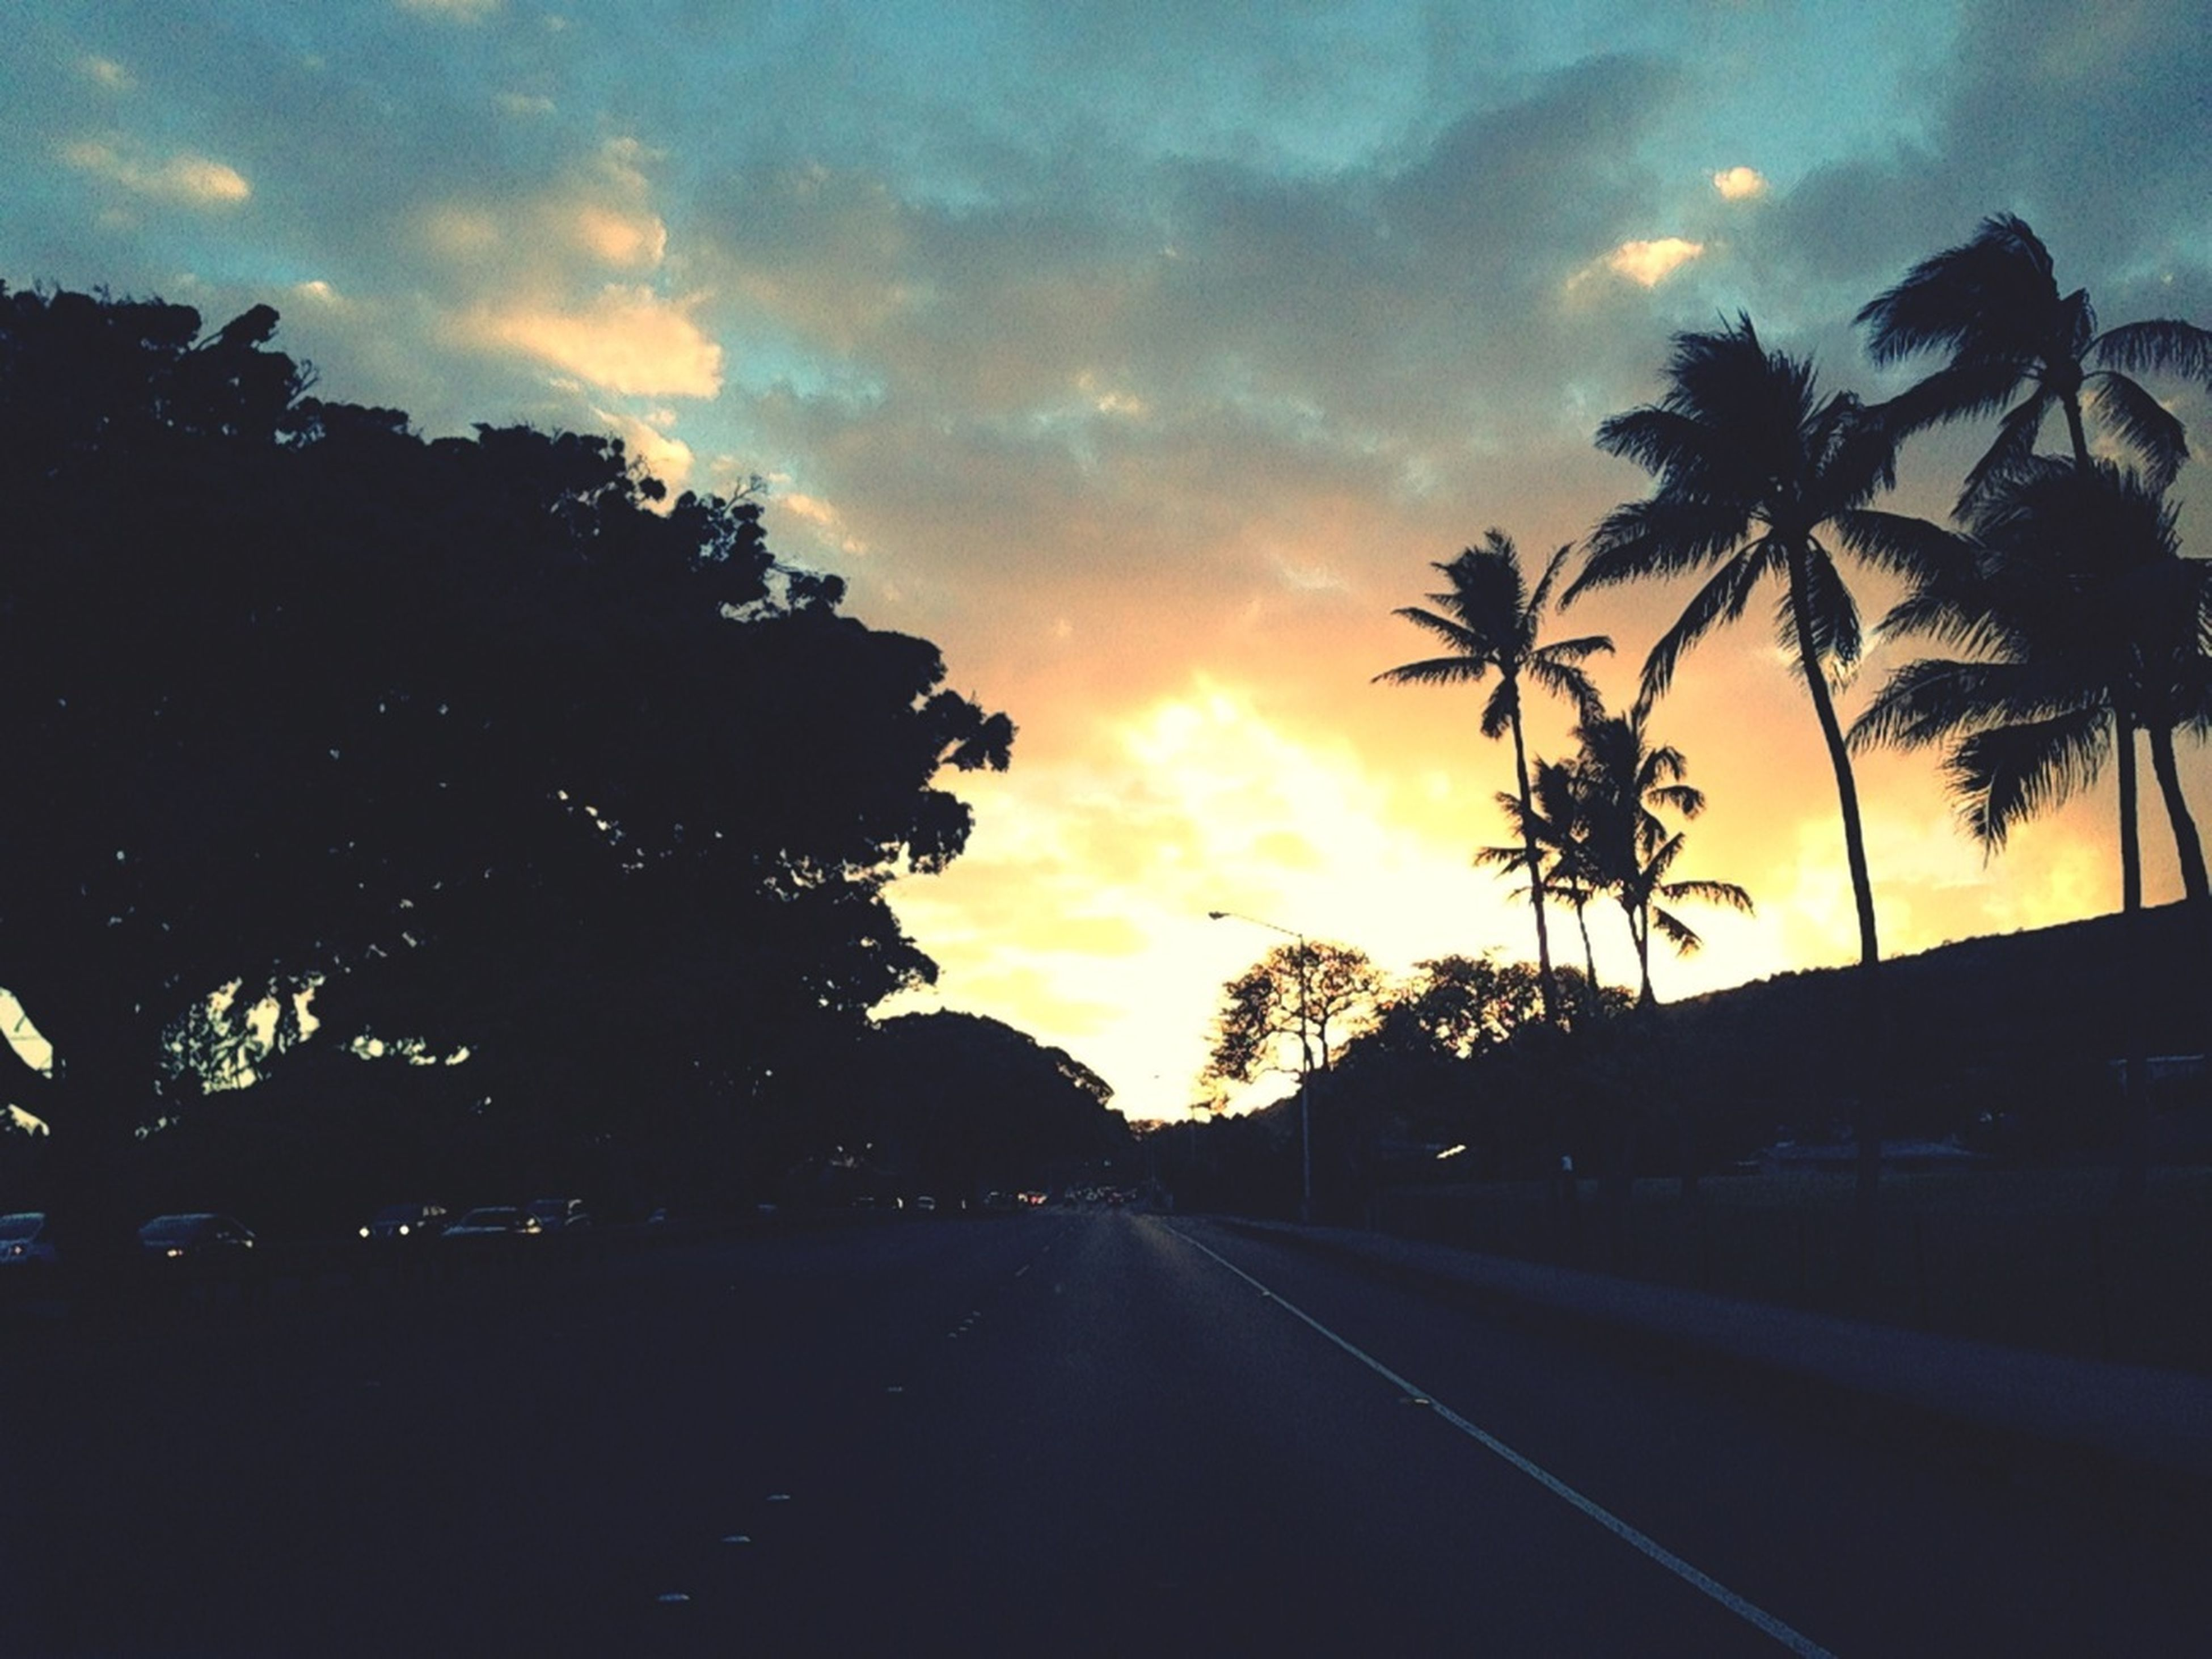 sunset, sky, silhouette, cloud - sky, transportation, road, the way forward, tree, dramatic sky, cloudy, orange color, palm tree, diminishing perspective, cloud, beauty in nature, nature, dusk, car, tranquility, street